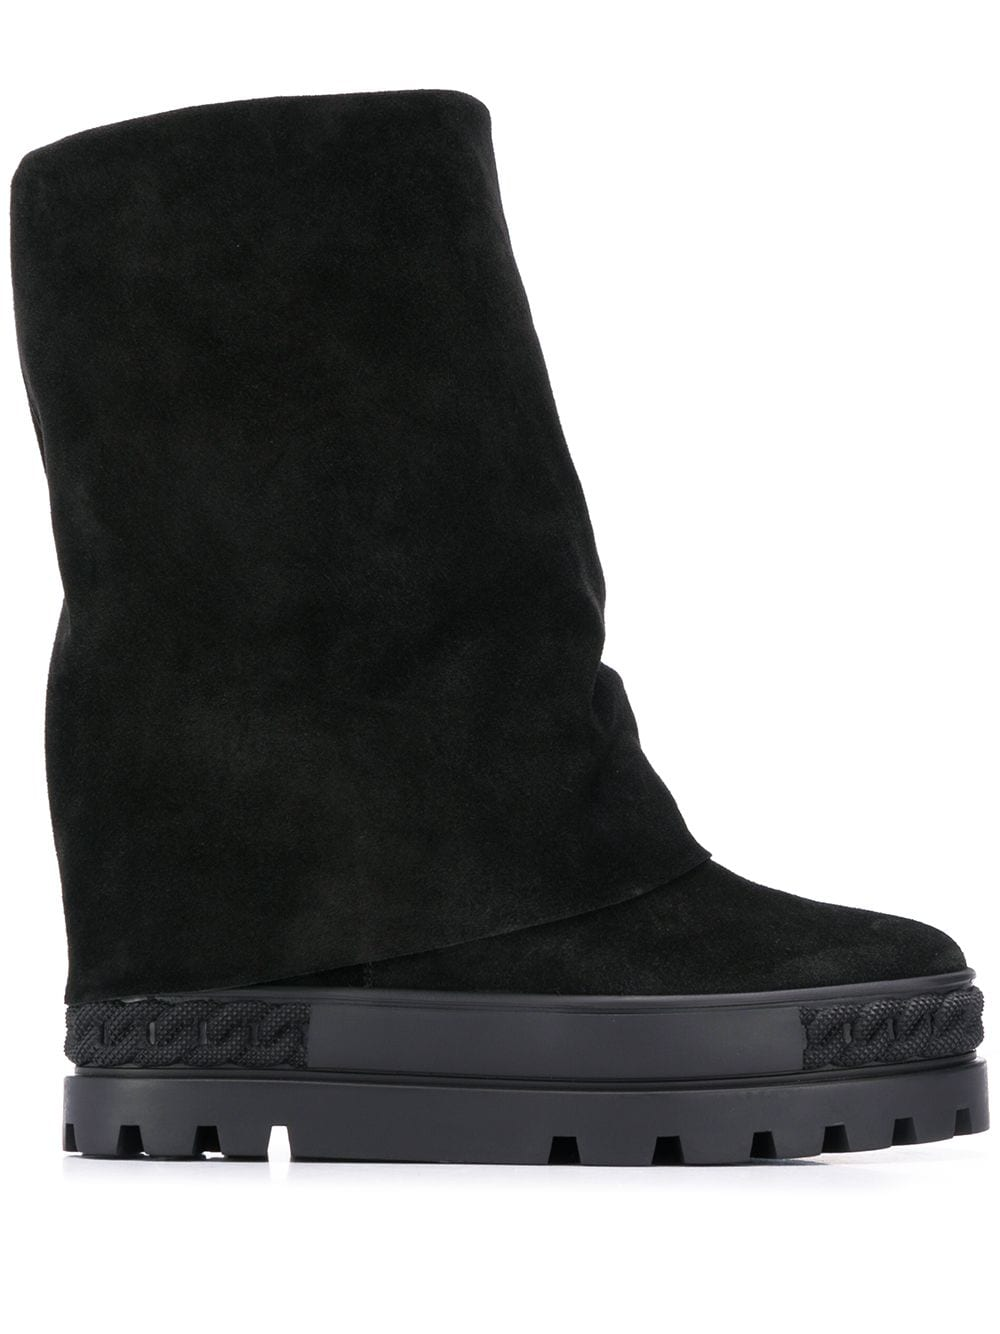 CASADEI- Suede Leather Boots- Woman- 40 - Black